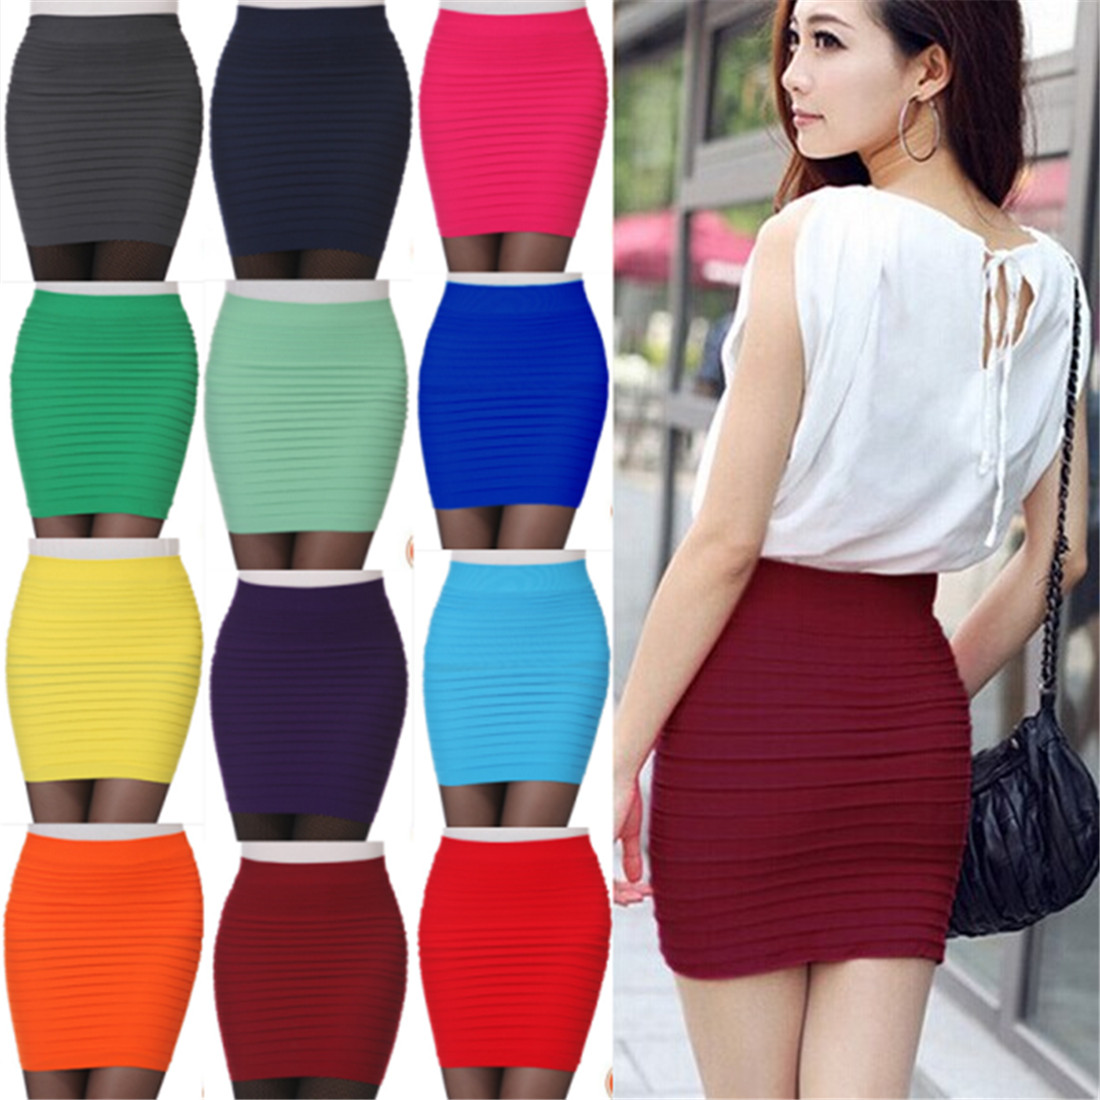 Elastic Pleated Skirt High Waist Bodycon Mini Skirt Business Office Cheap Short Pencil Skirts Solid Color Pink Black Blue Hot